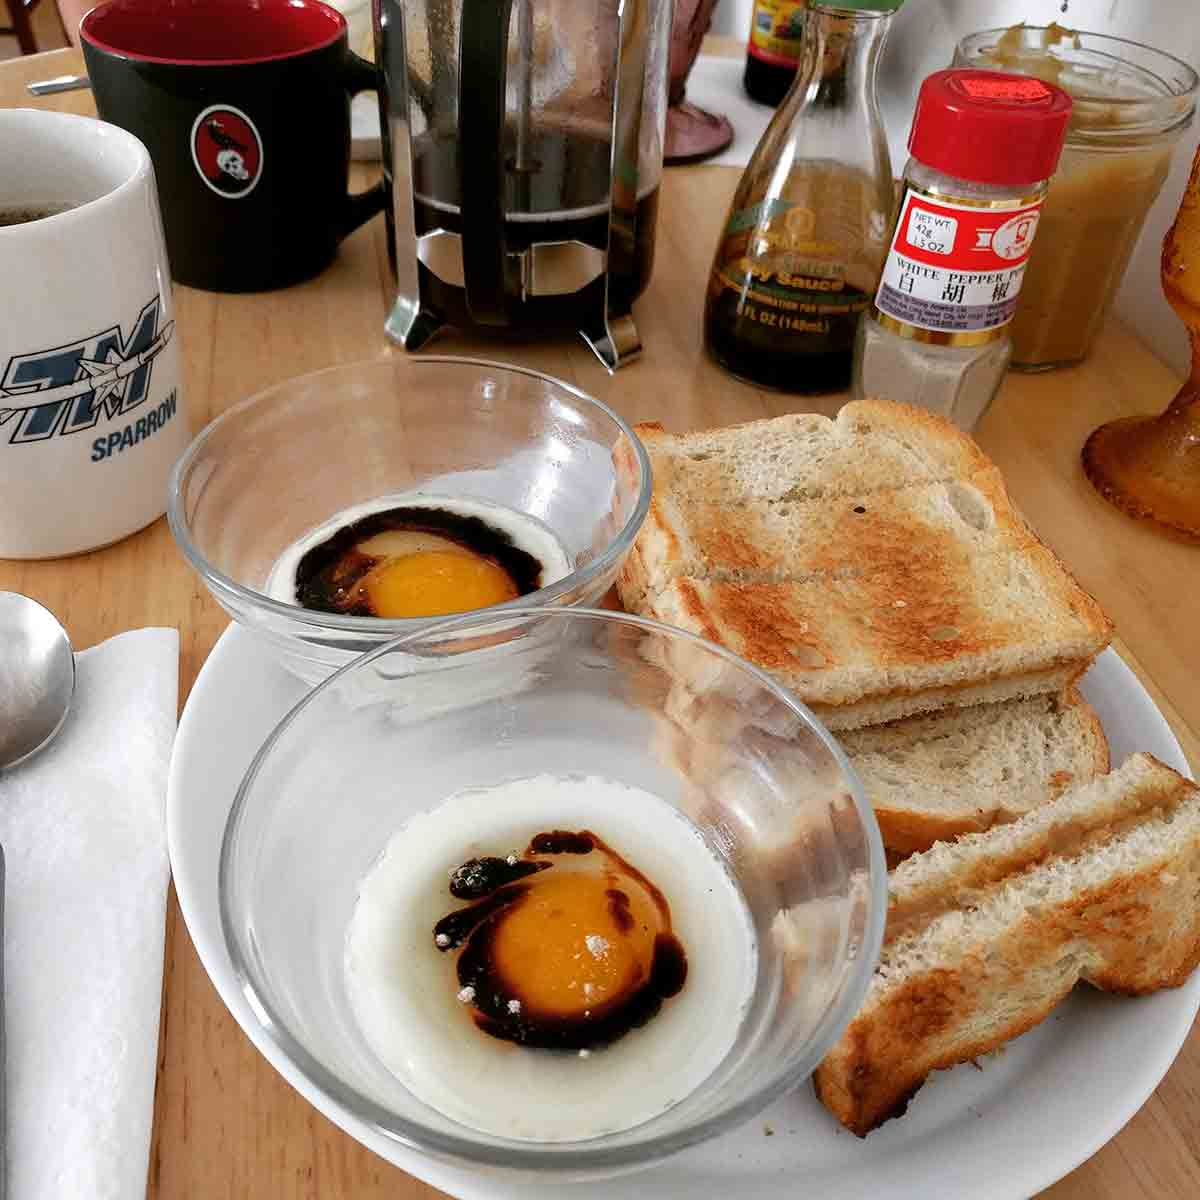 One poached egg each in two custard cups, with a bit of soy and white pepper. The cups are on a plate alongside a stack of kaya toast (kaya and butter sandwiched between toast cut into strips). In the background is a coffee mug next to a French press, along with the condiments used in the breakfast.